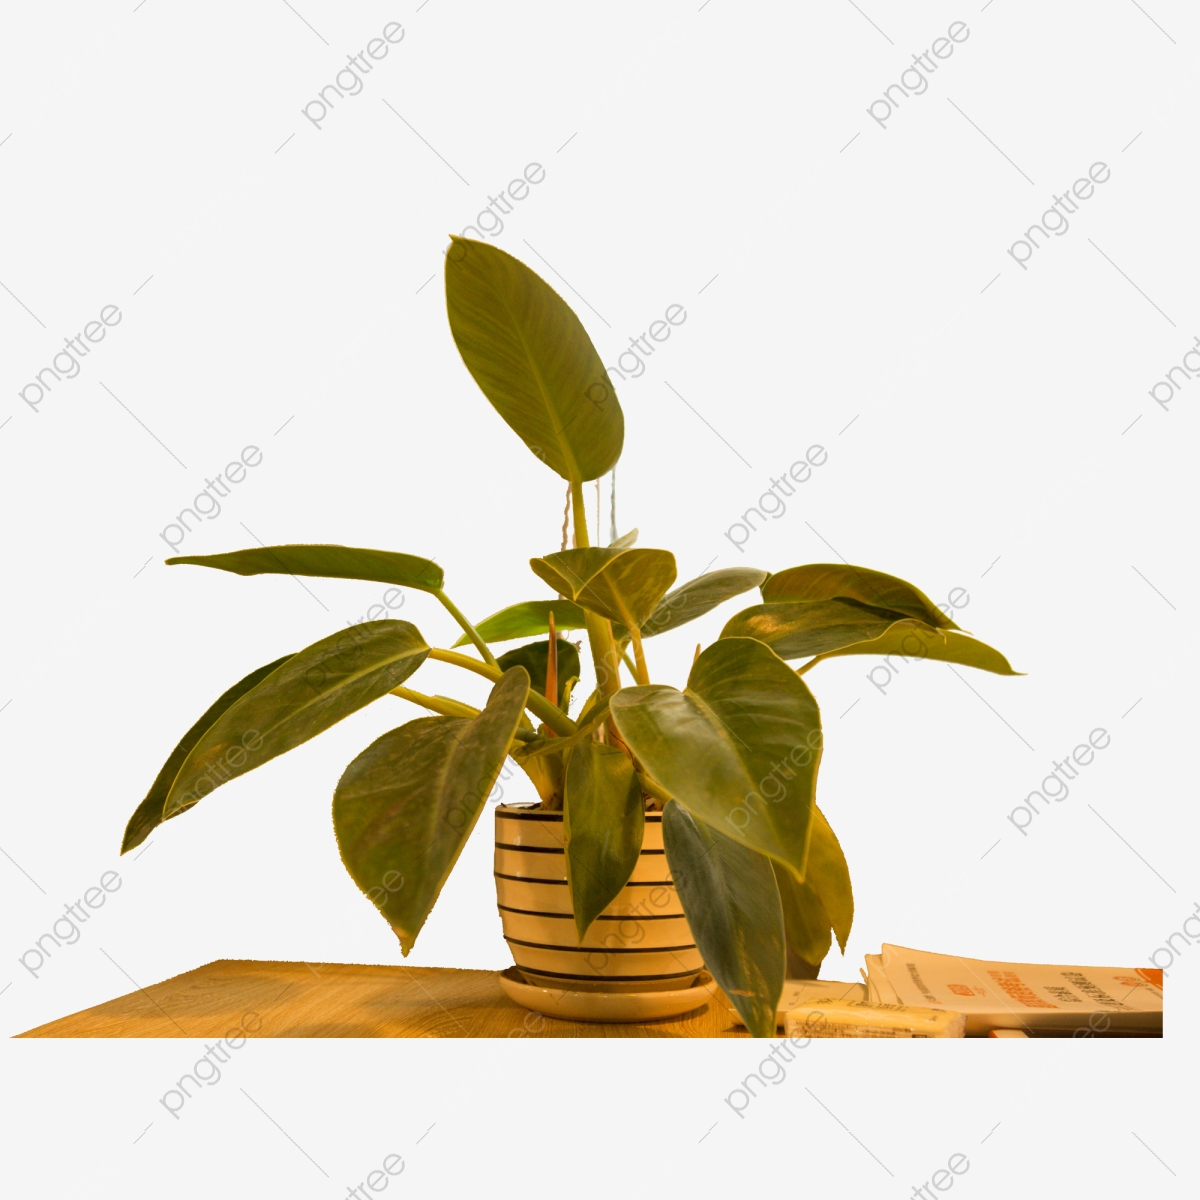 A Pot Of Potted Plants On The Table Potted Plants Plants Nature Png Transparent Clipart Image And Psd File For Free Download